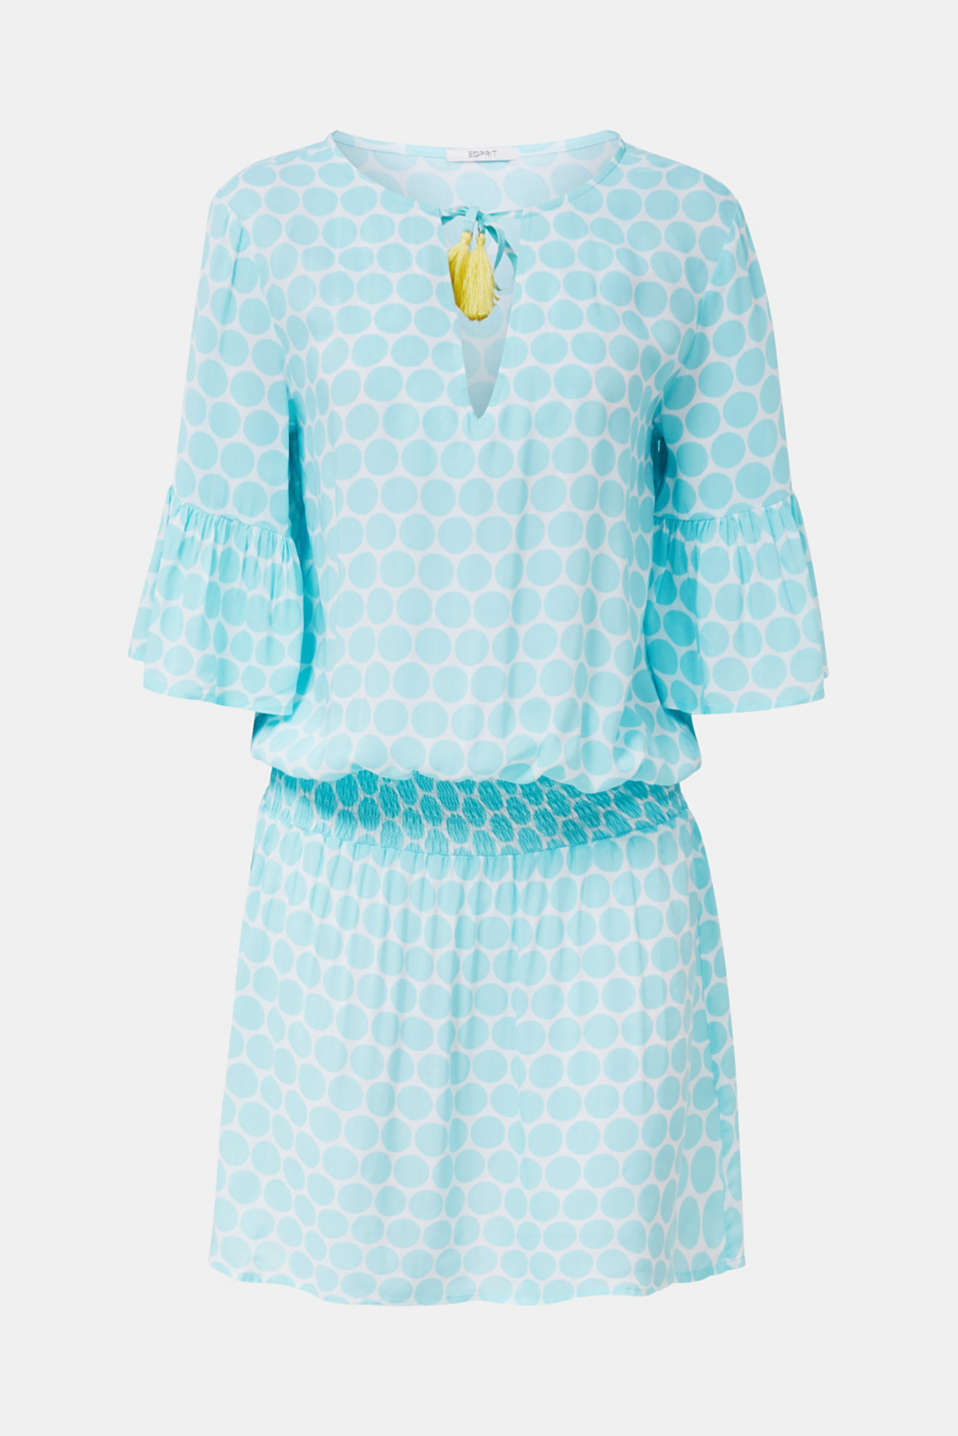 Tunic dress with a polka dot print, LIGHT AQUA GREEN, detail image number 3